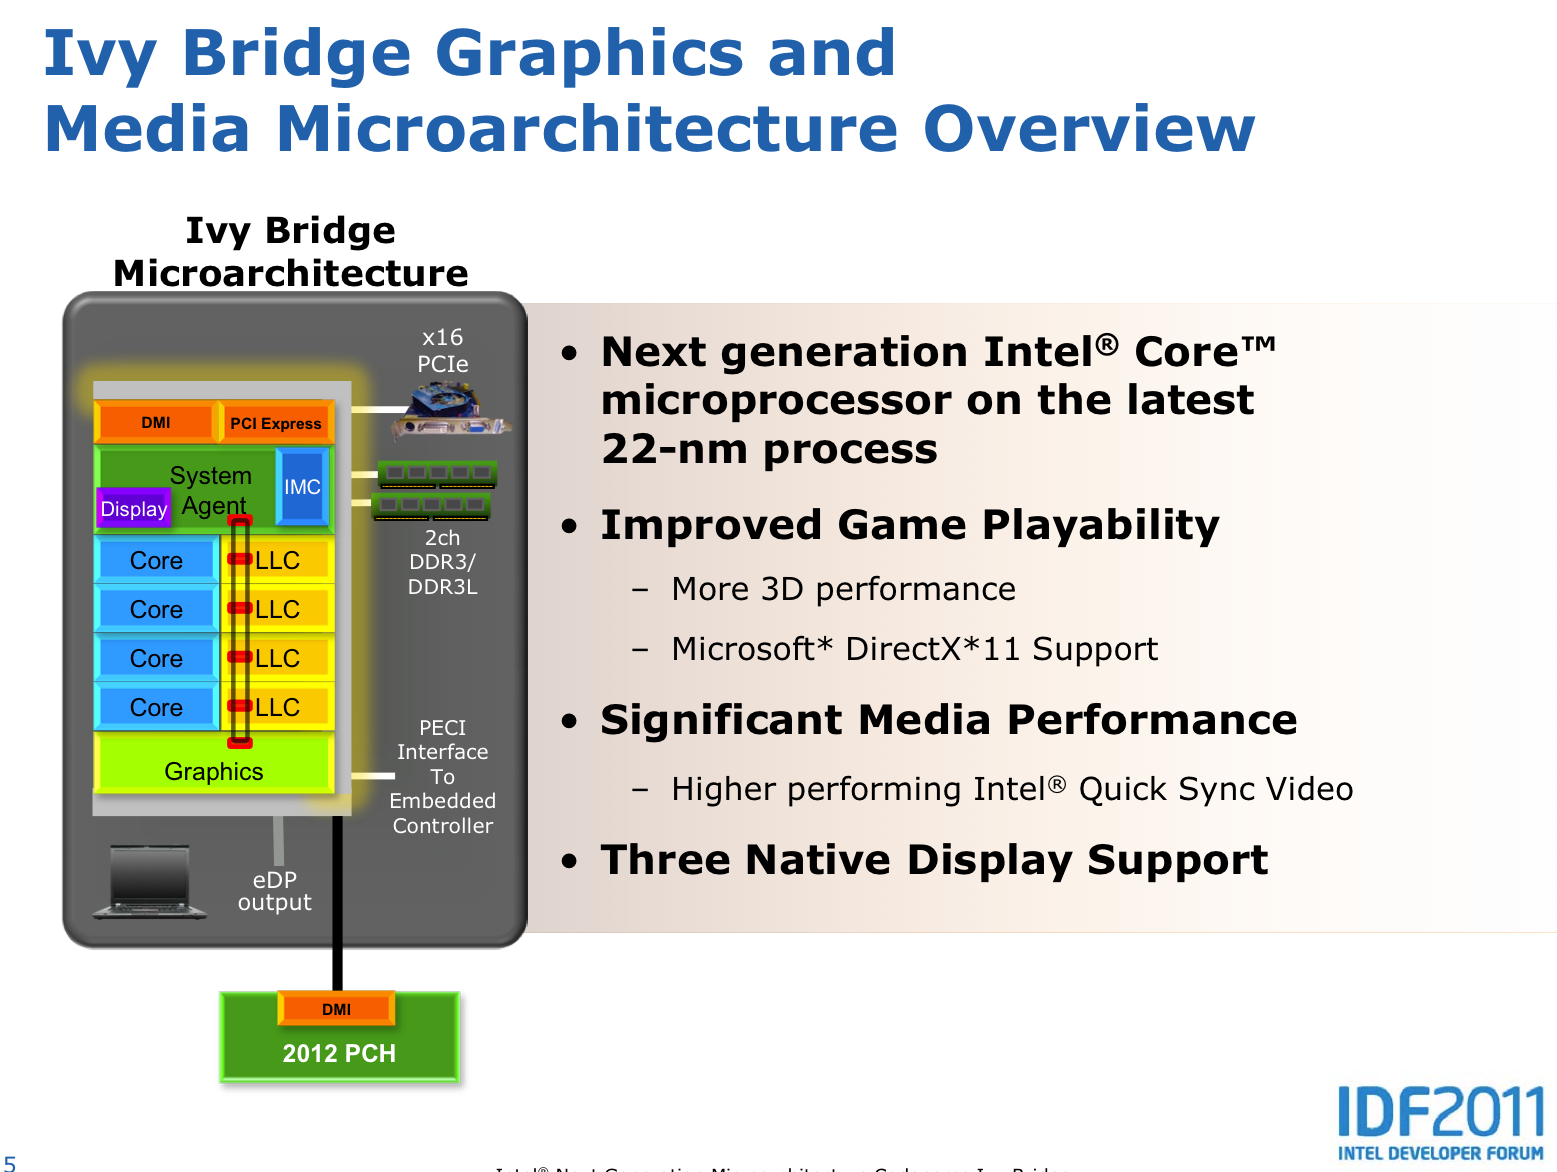 intel hd graphics 4000 max resolution